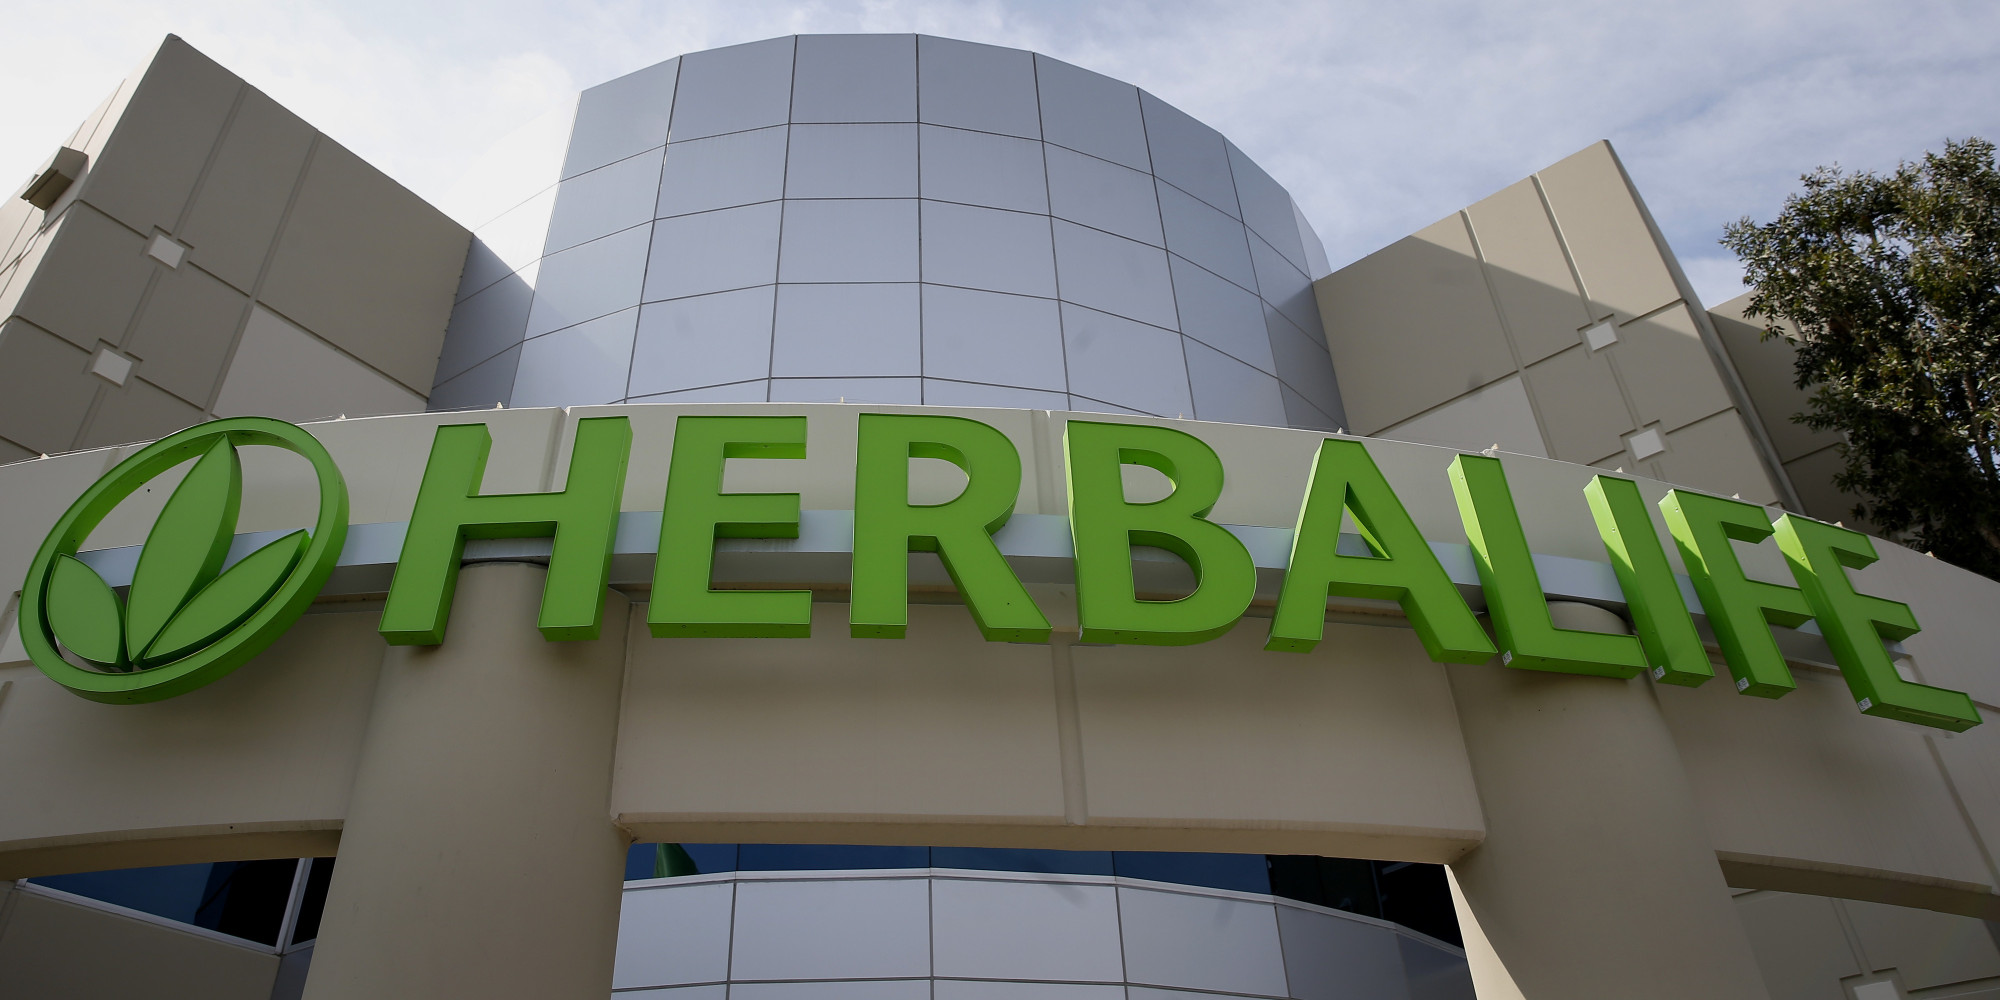 herbalife disciplined 600 distributors for medical claims abc news finds huffpost. Black Bedroom Furniture Sets. Home Design Ideas